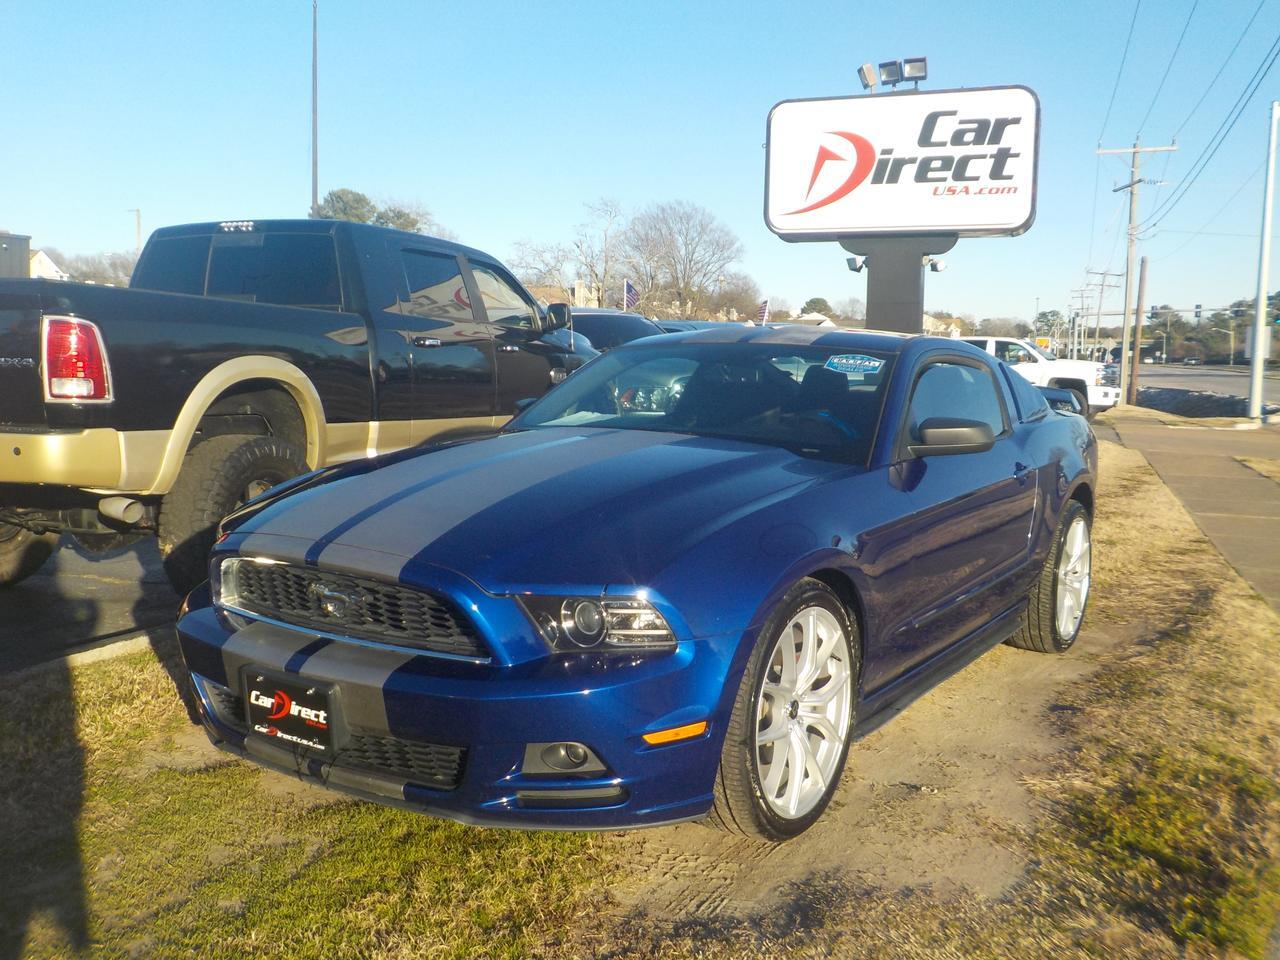 2014 FORD MUSTANG 2 DOOR COUPE, CUSTOM DRAG RIMS, BLUETOOTH WIRELESS, SYNC, VERY CLEAN, WELL MAINTAINED!